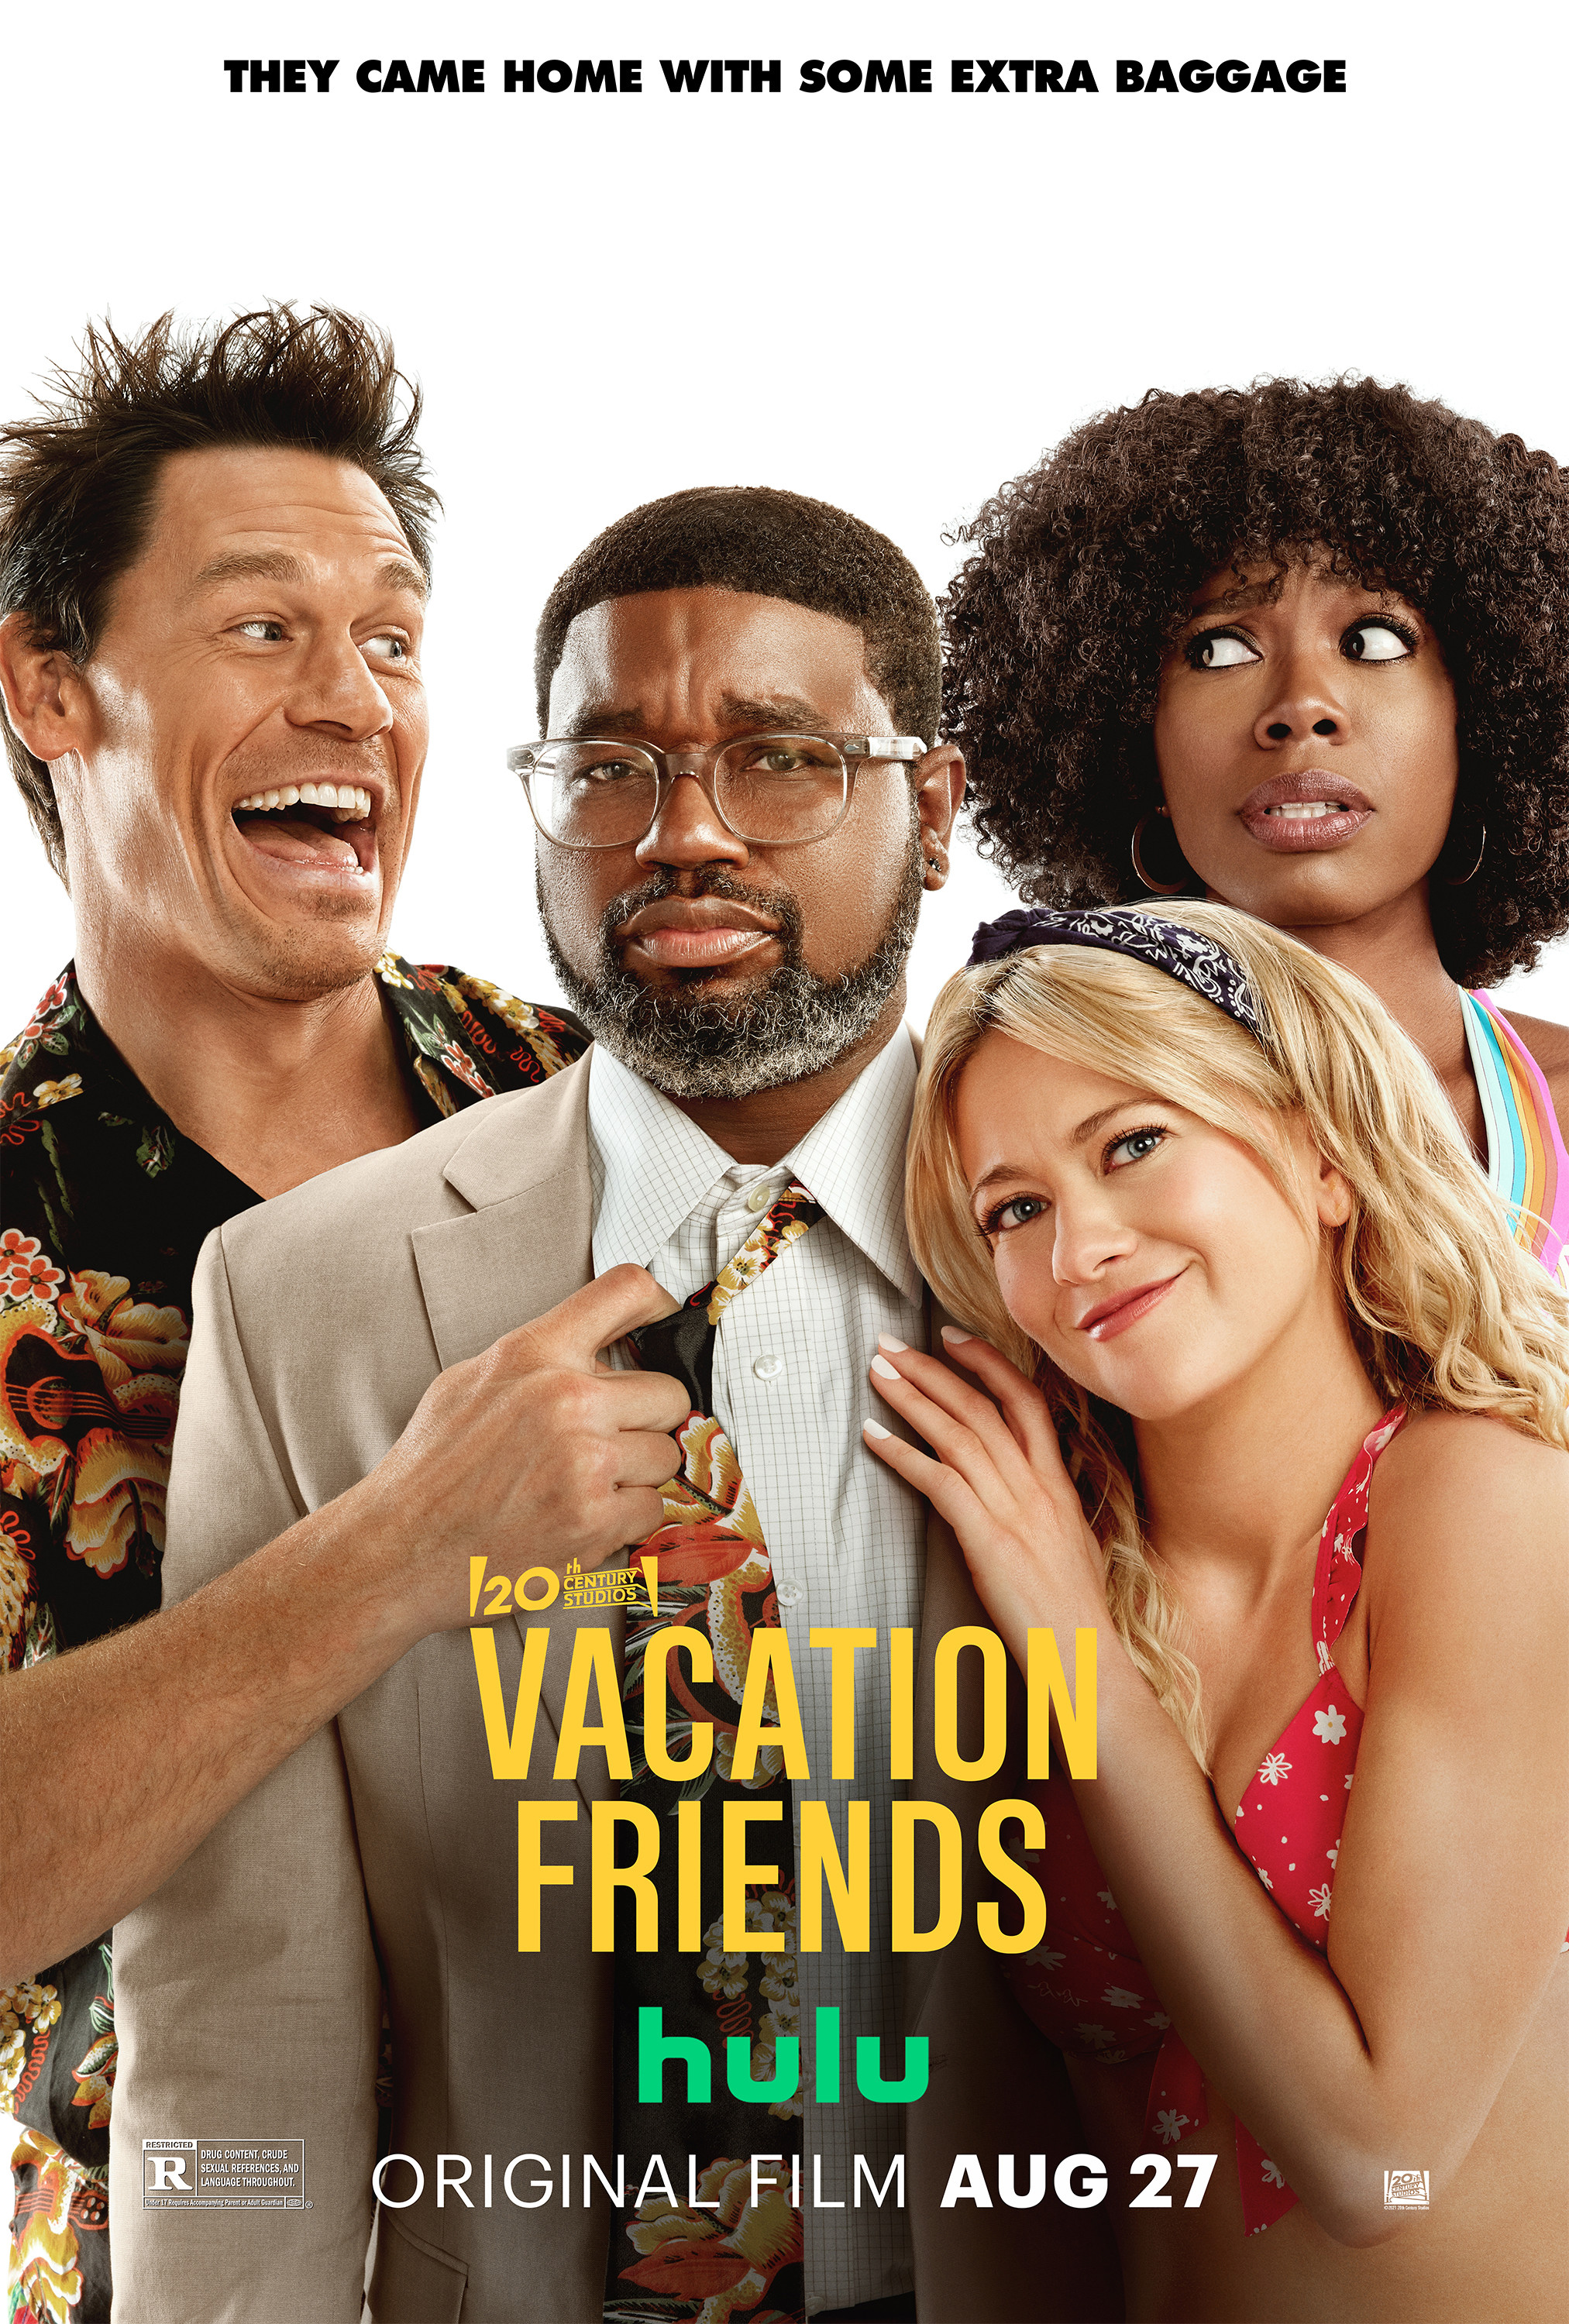 Vacation Friends Reviews - Metacritic